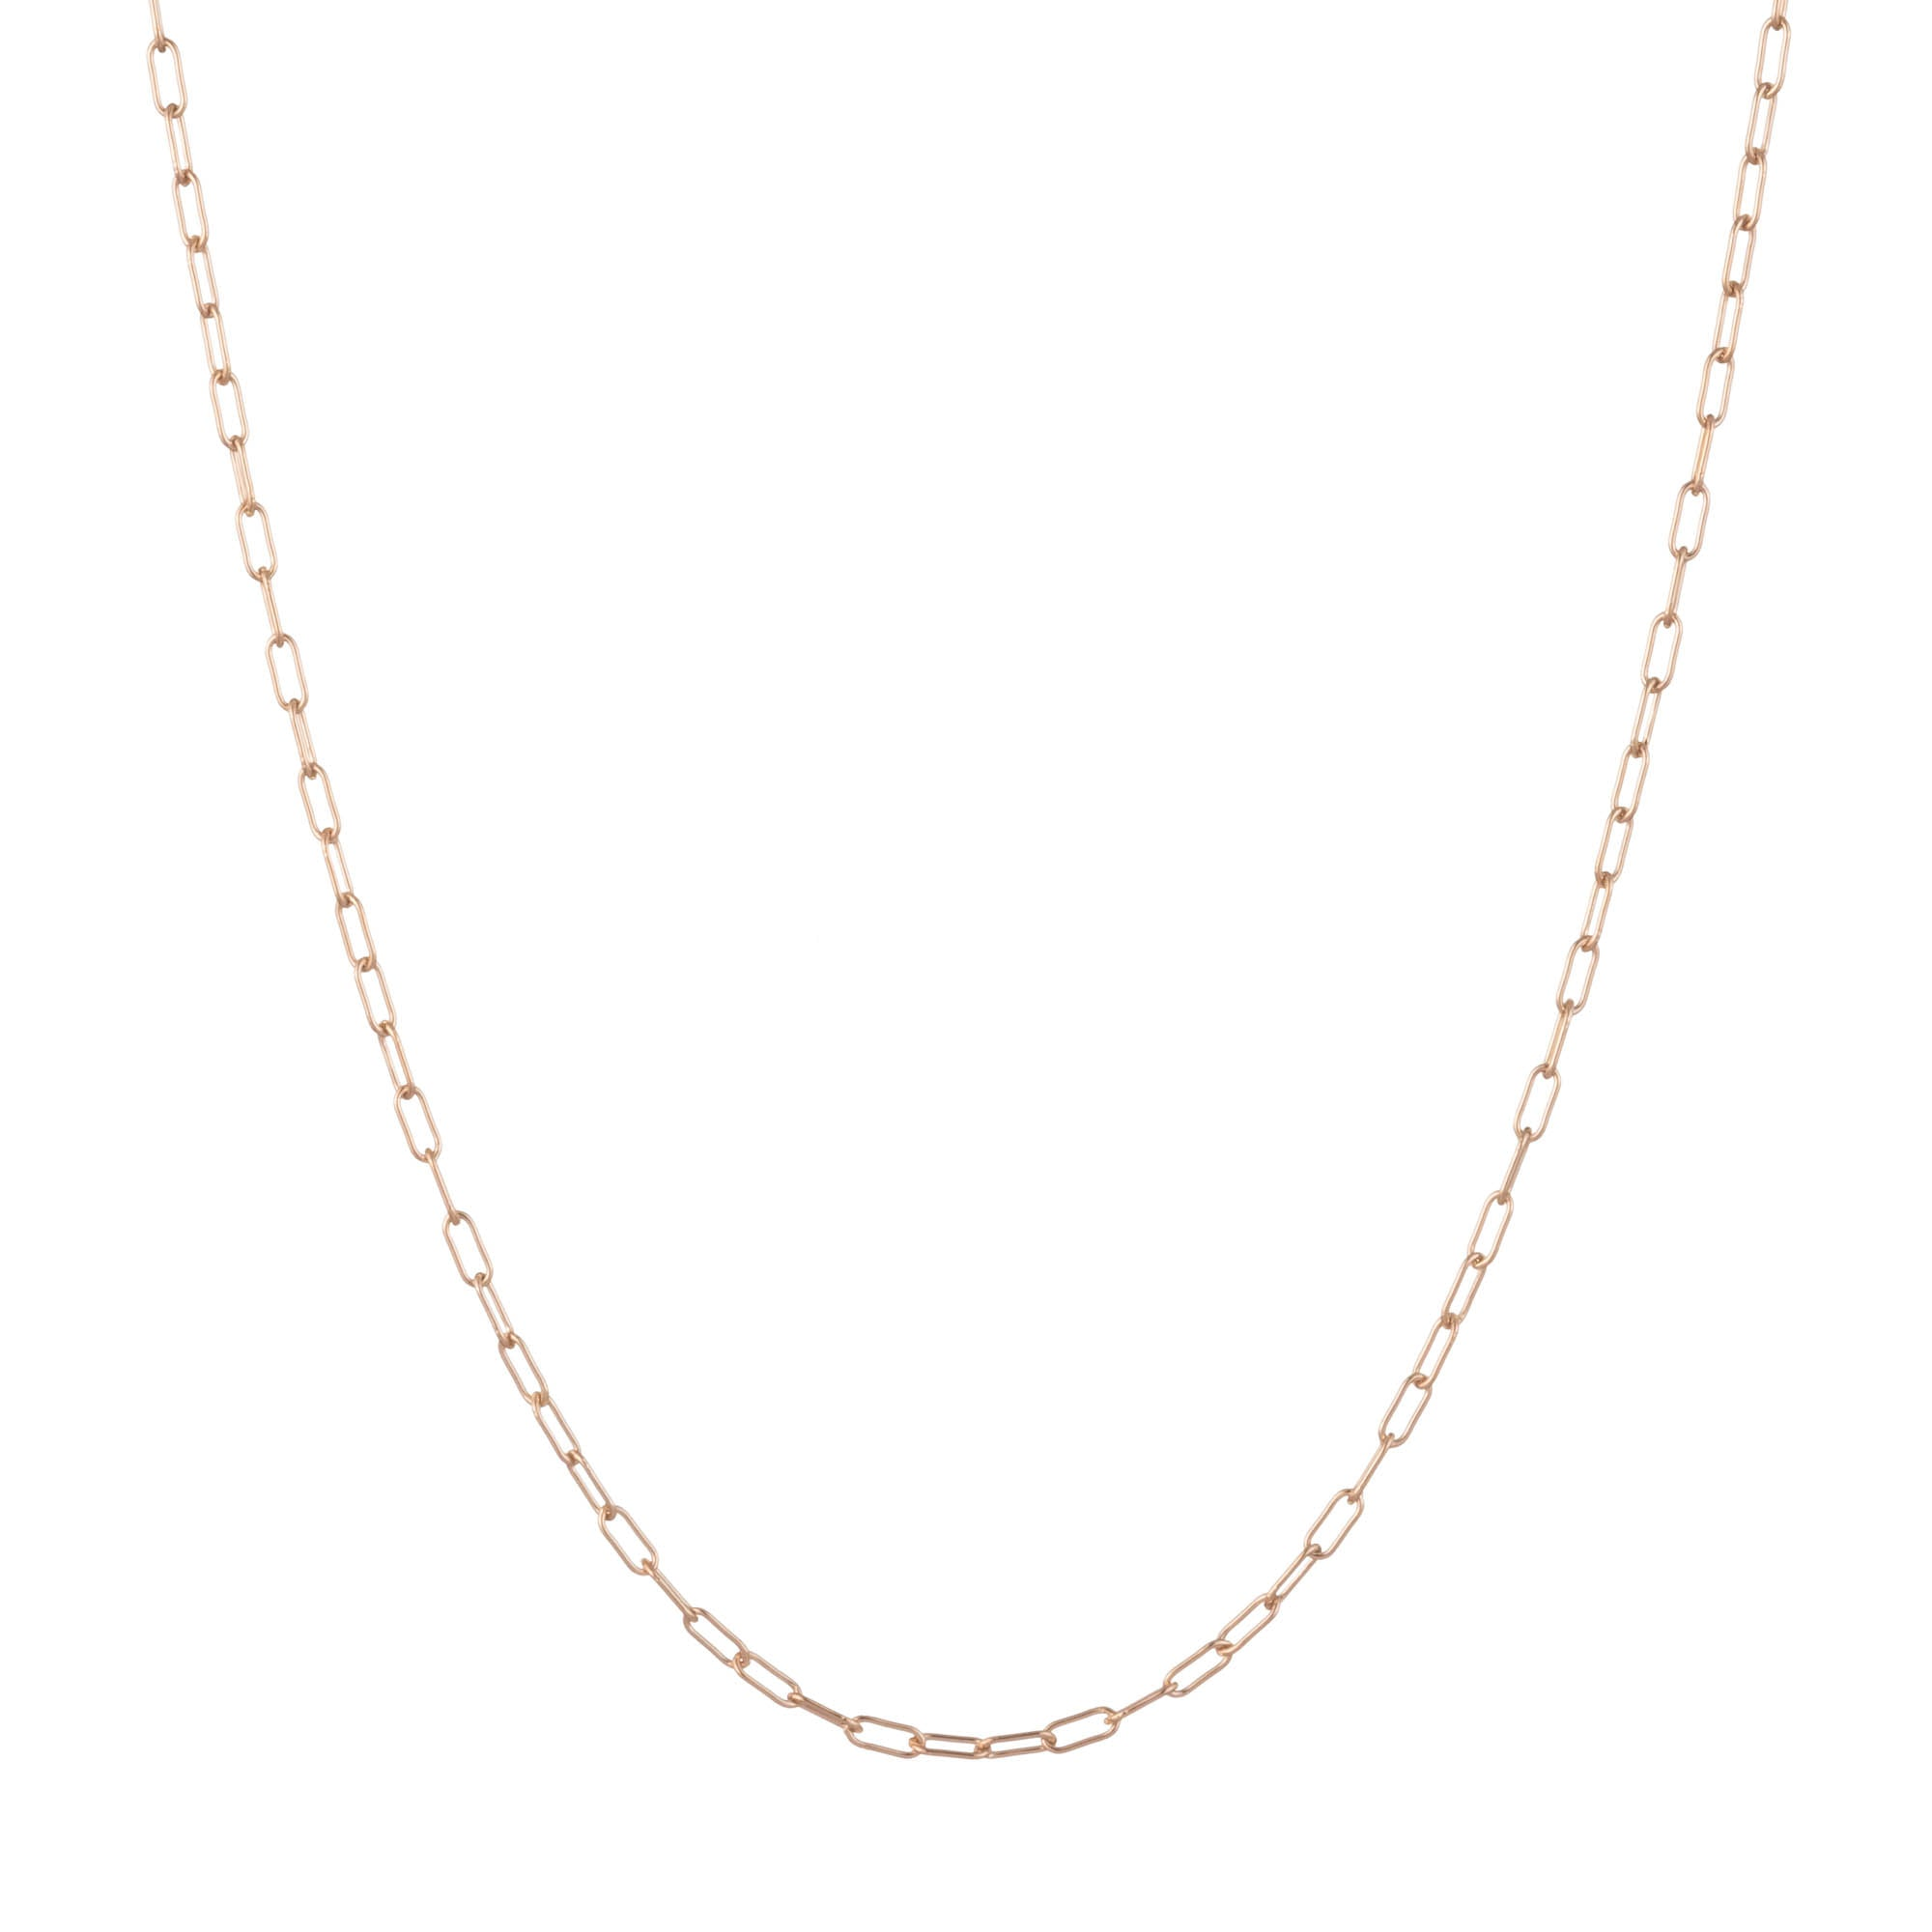 ali grace jewelry rose gold chain necklace mens chain necklace delicate chain necklace for layering